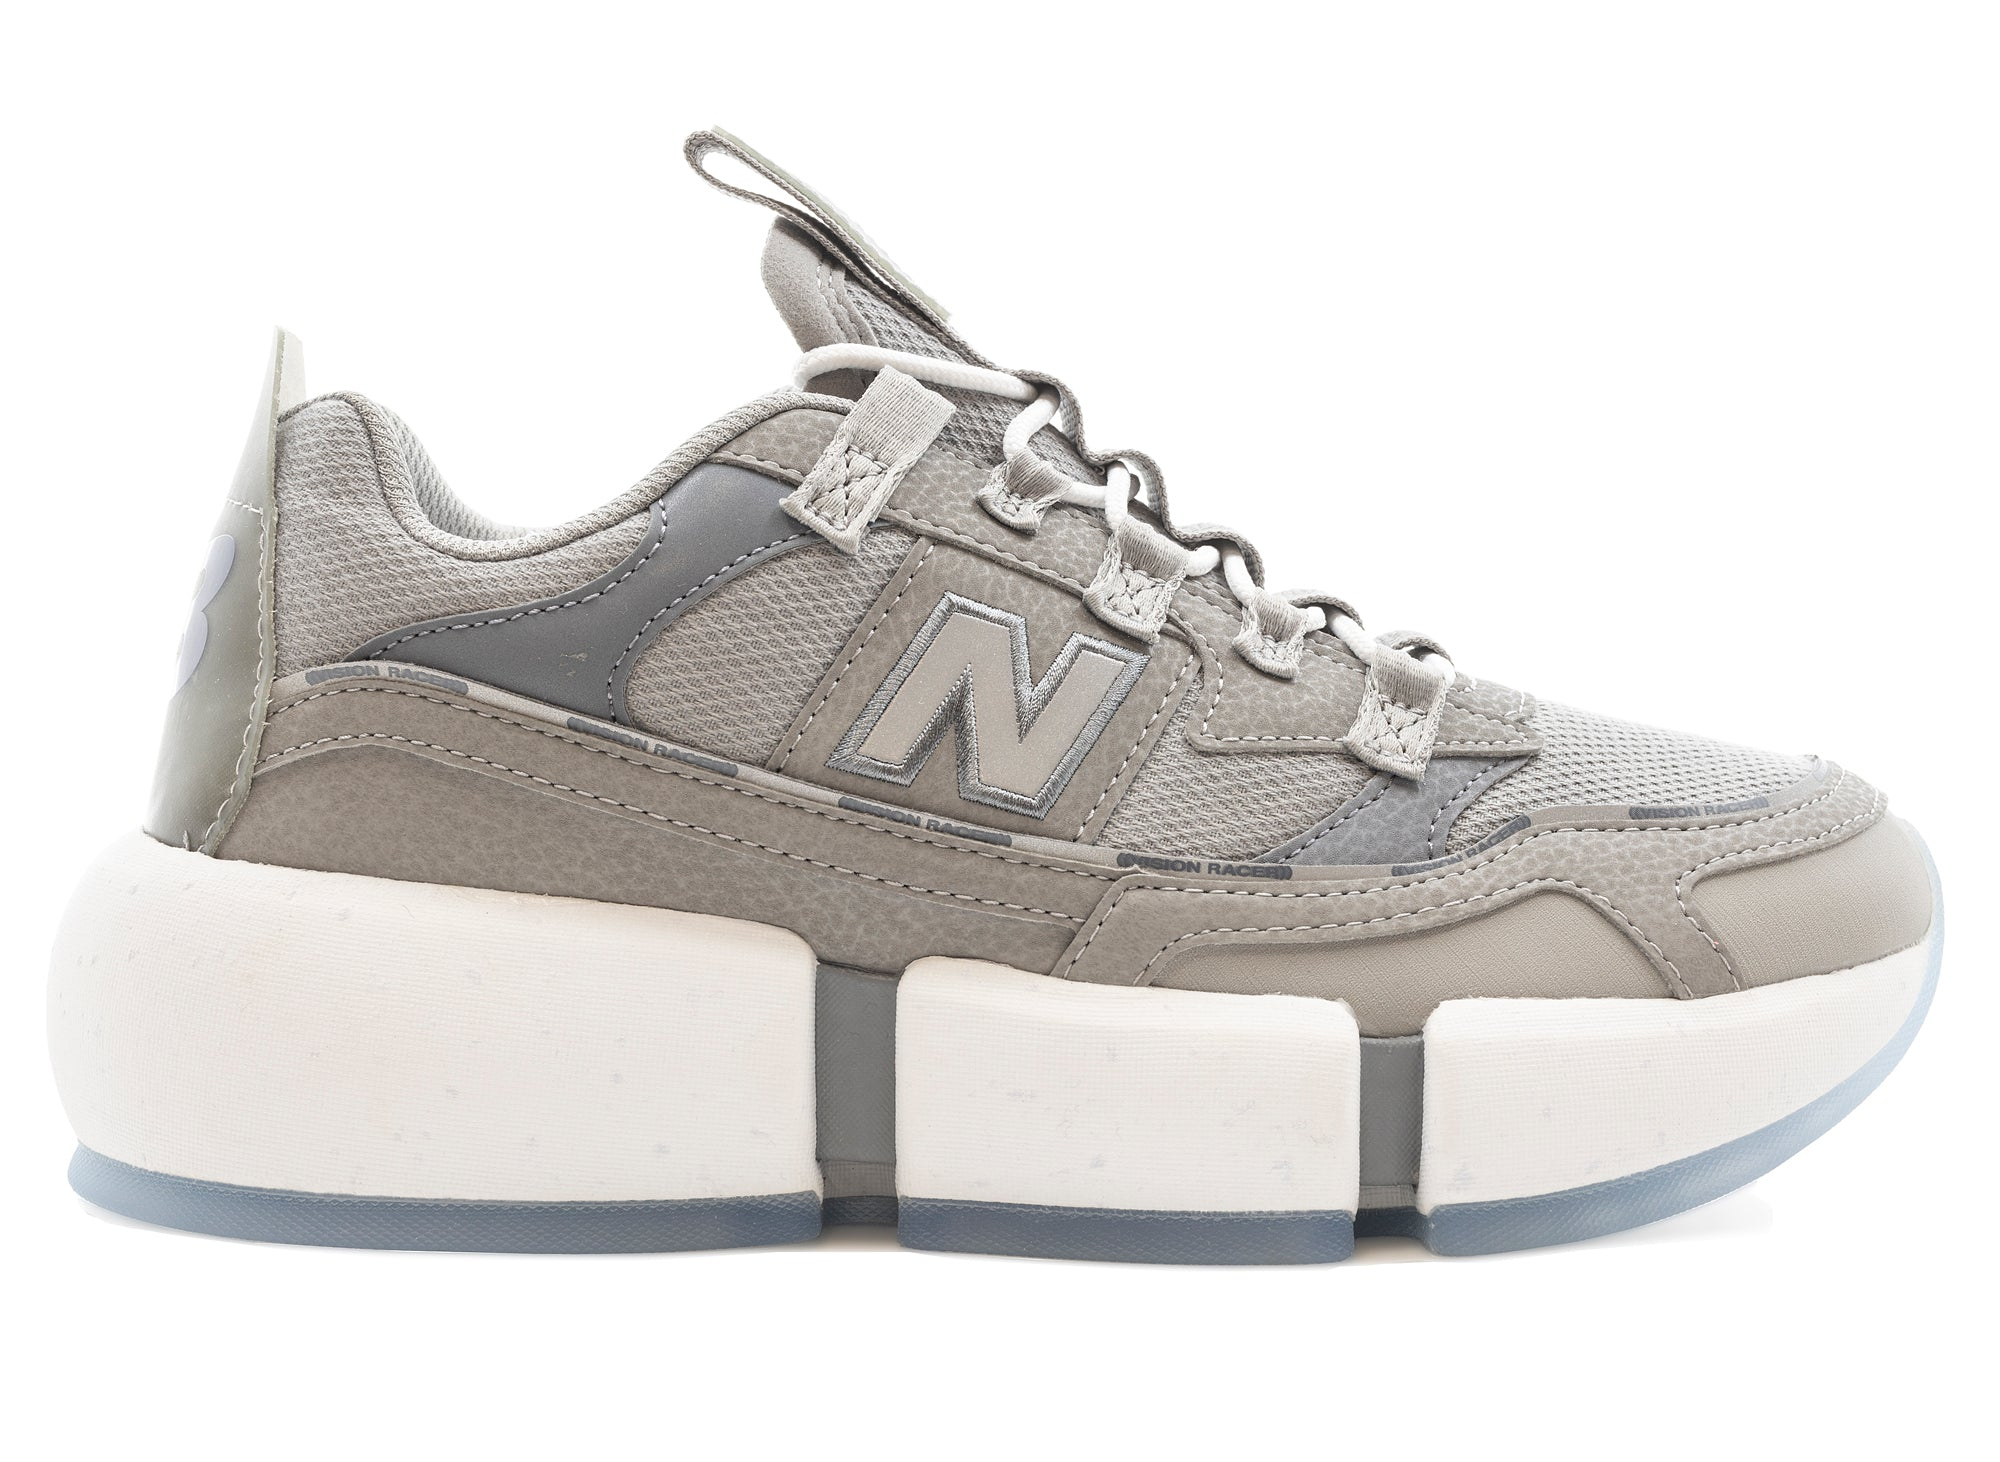 New Balance Vision Racer 'Jaden Smith' MSVRCJSD - Oneness Boutique